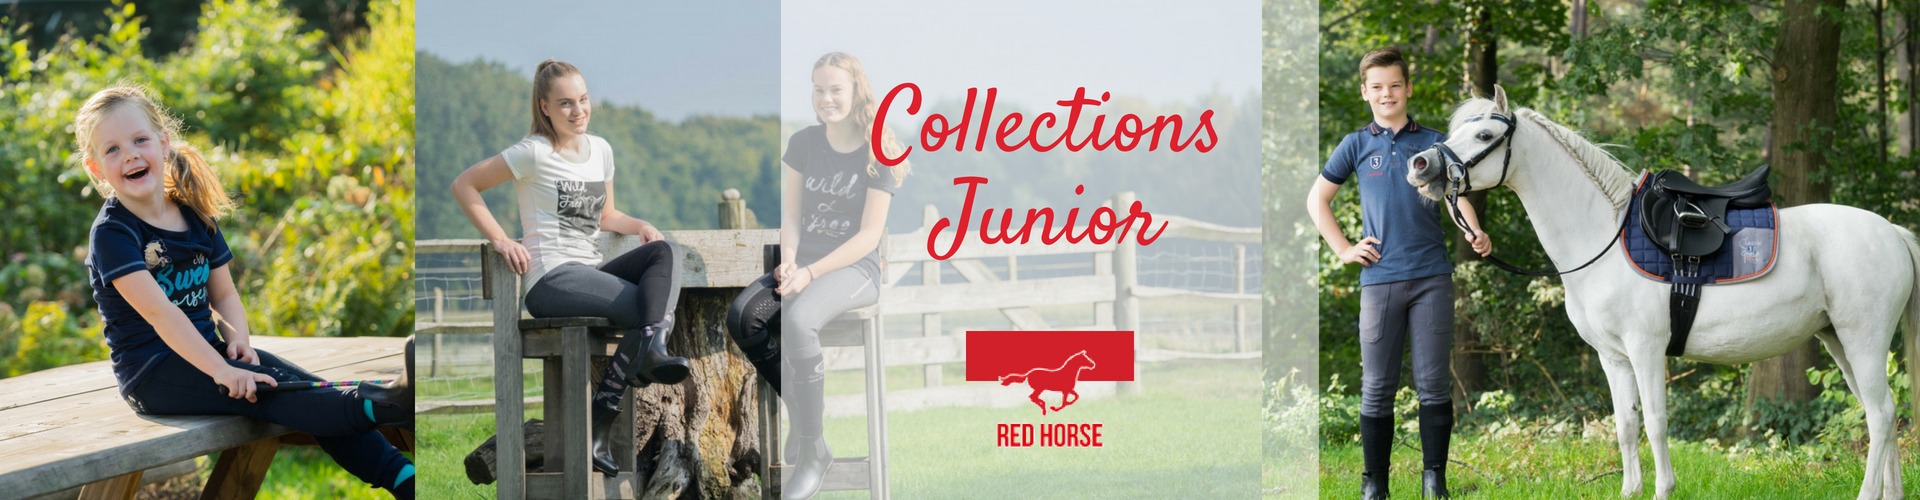 Collection cavalier junior Red horse